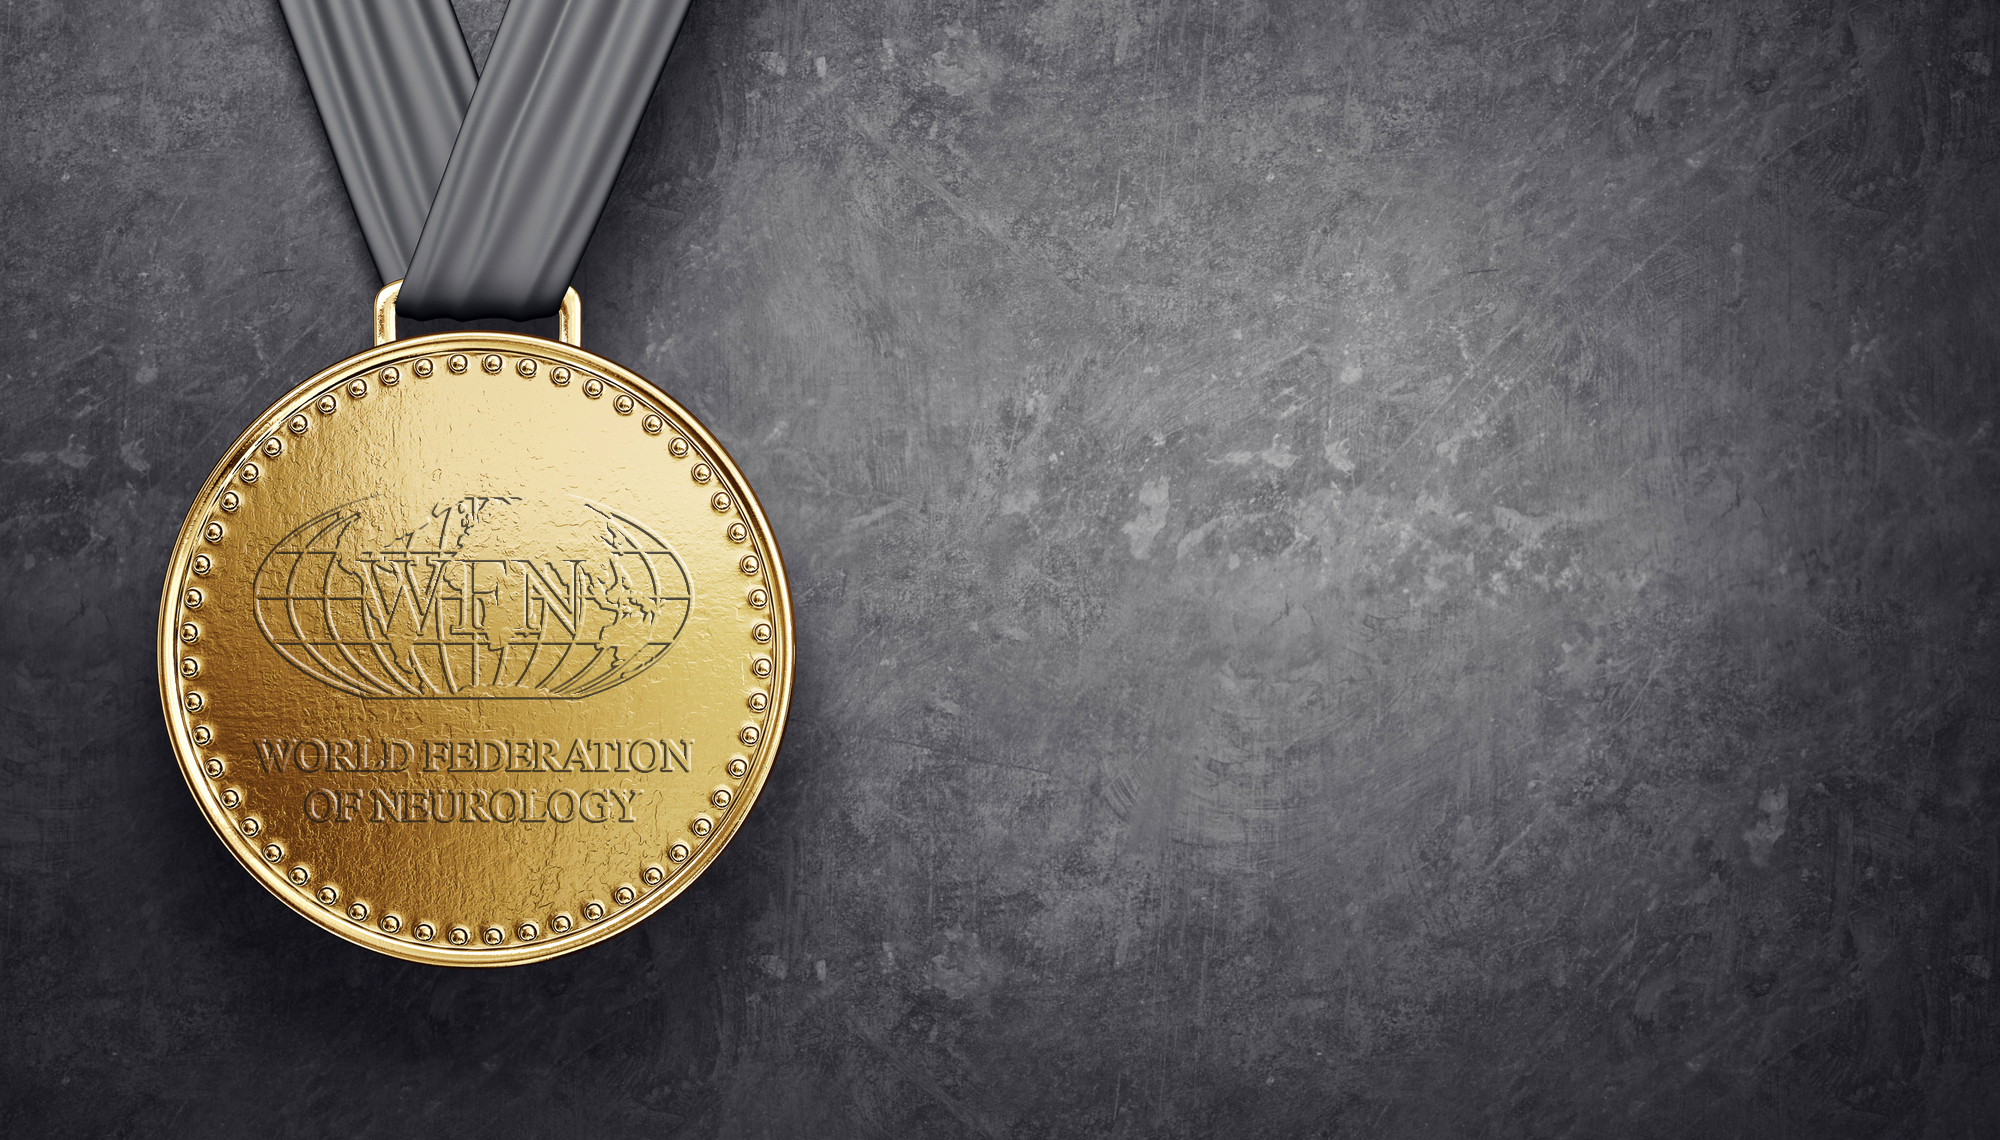 iStock 1022182262 WFN Medals